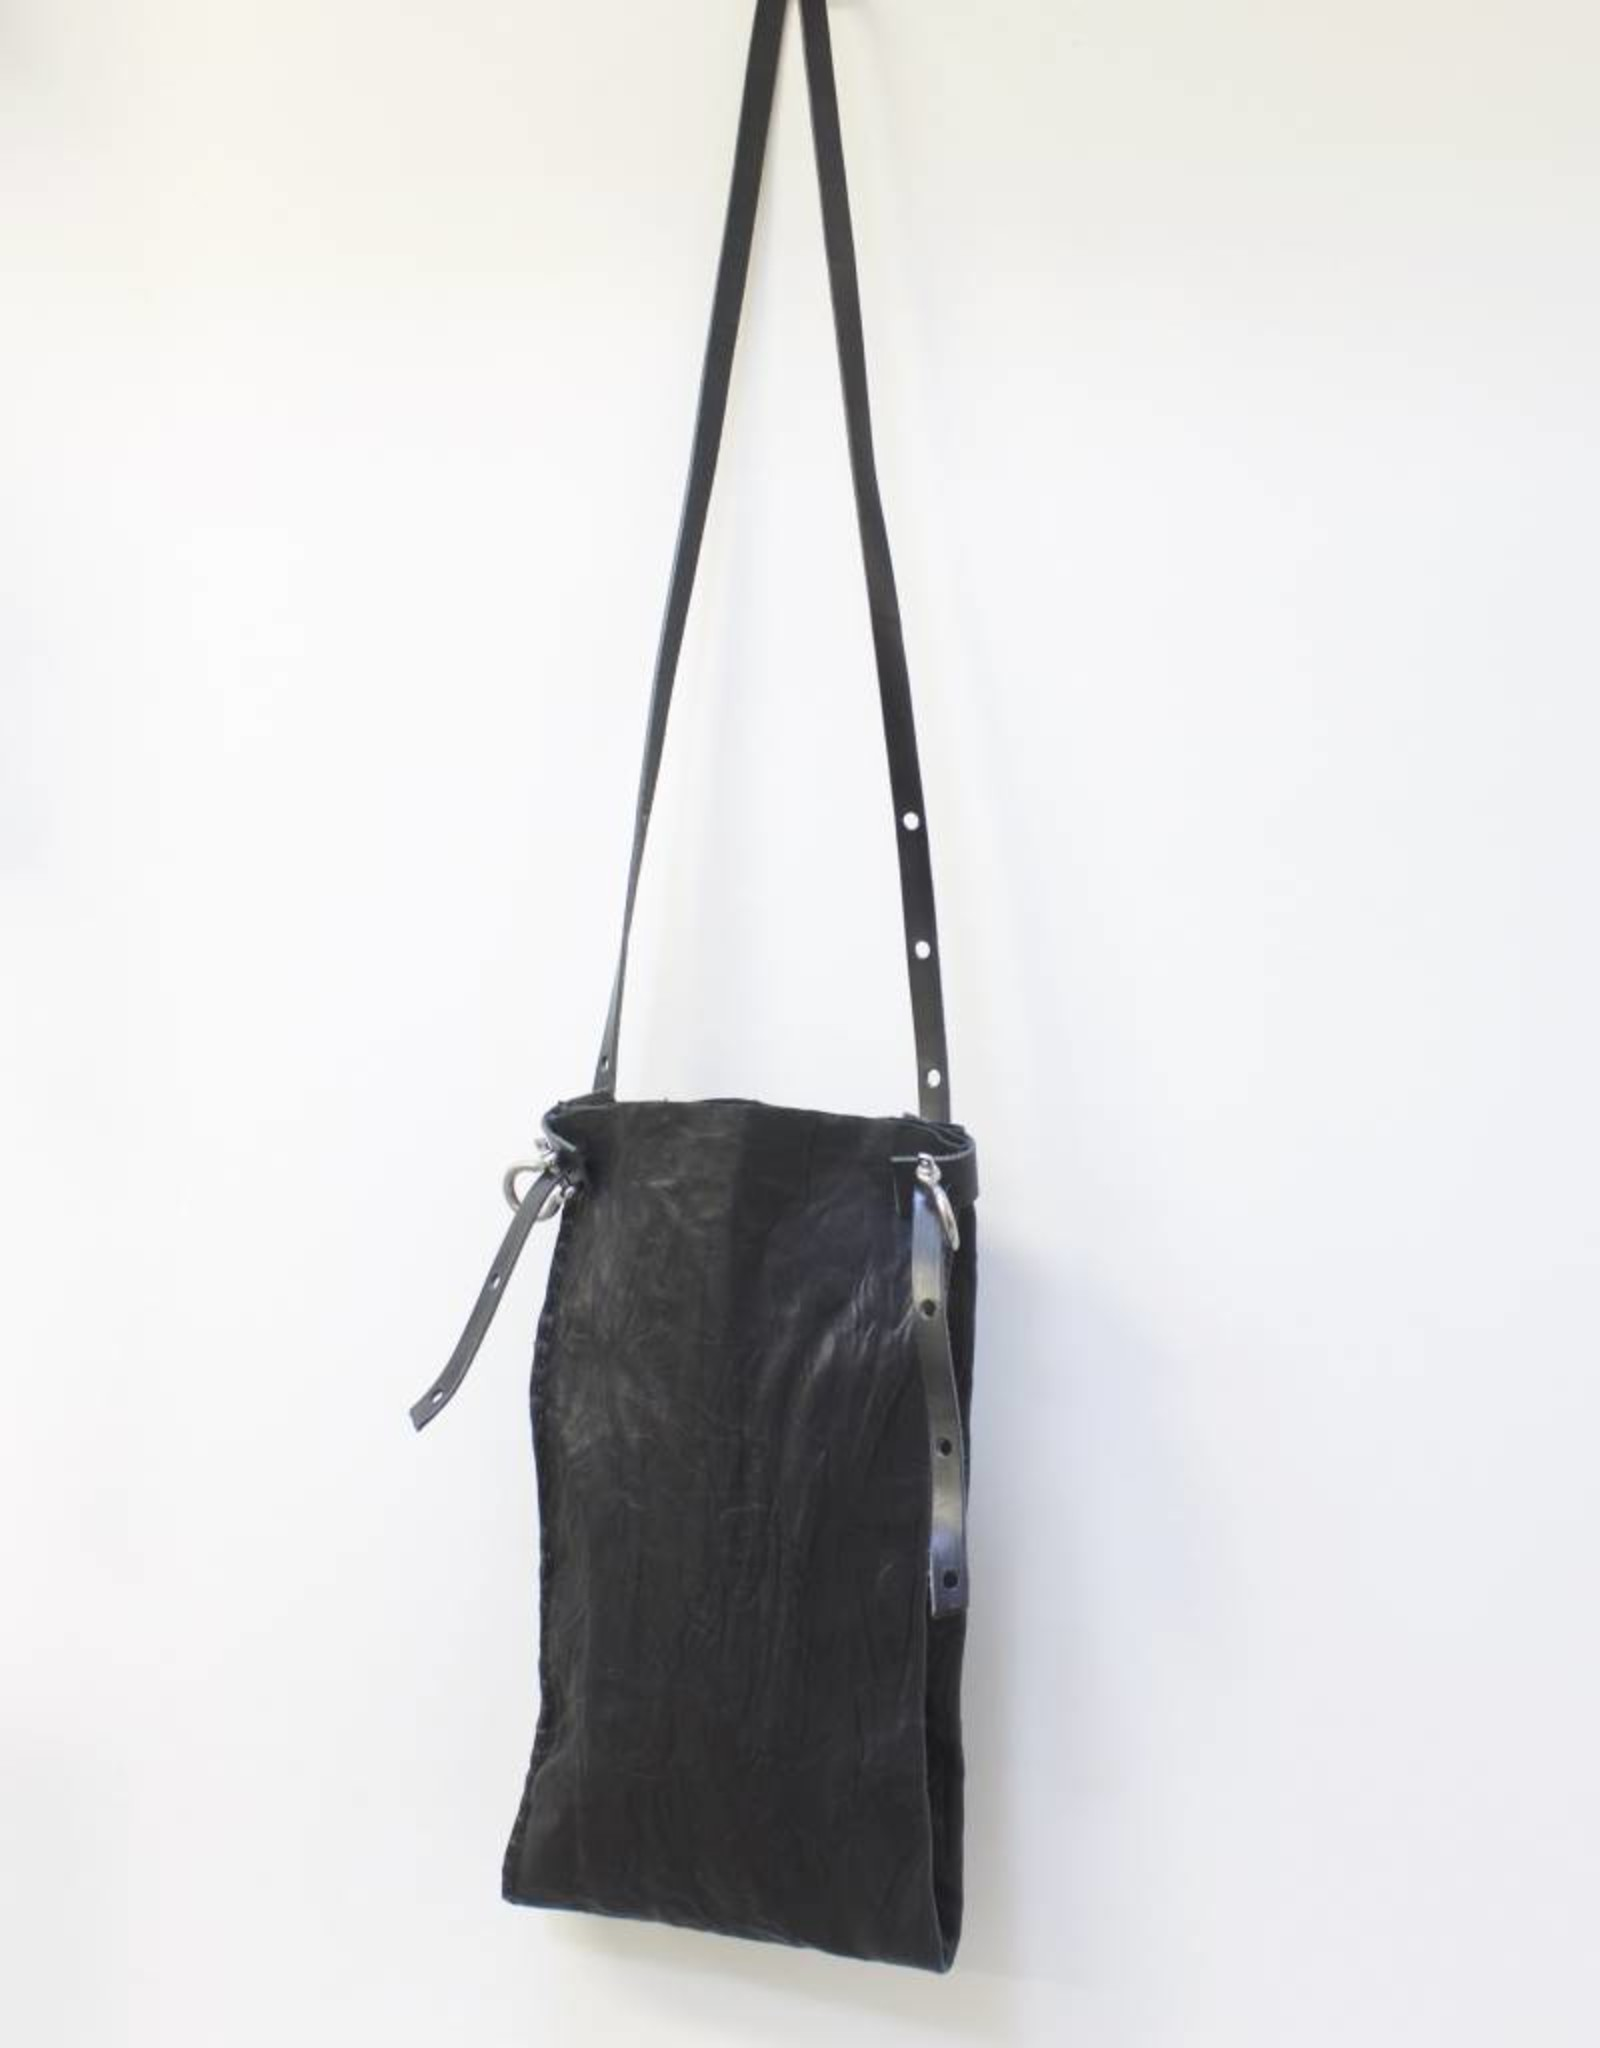 Engso Hand Crafted Long Double Leather Bag - Black